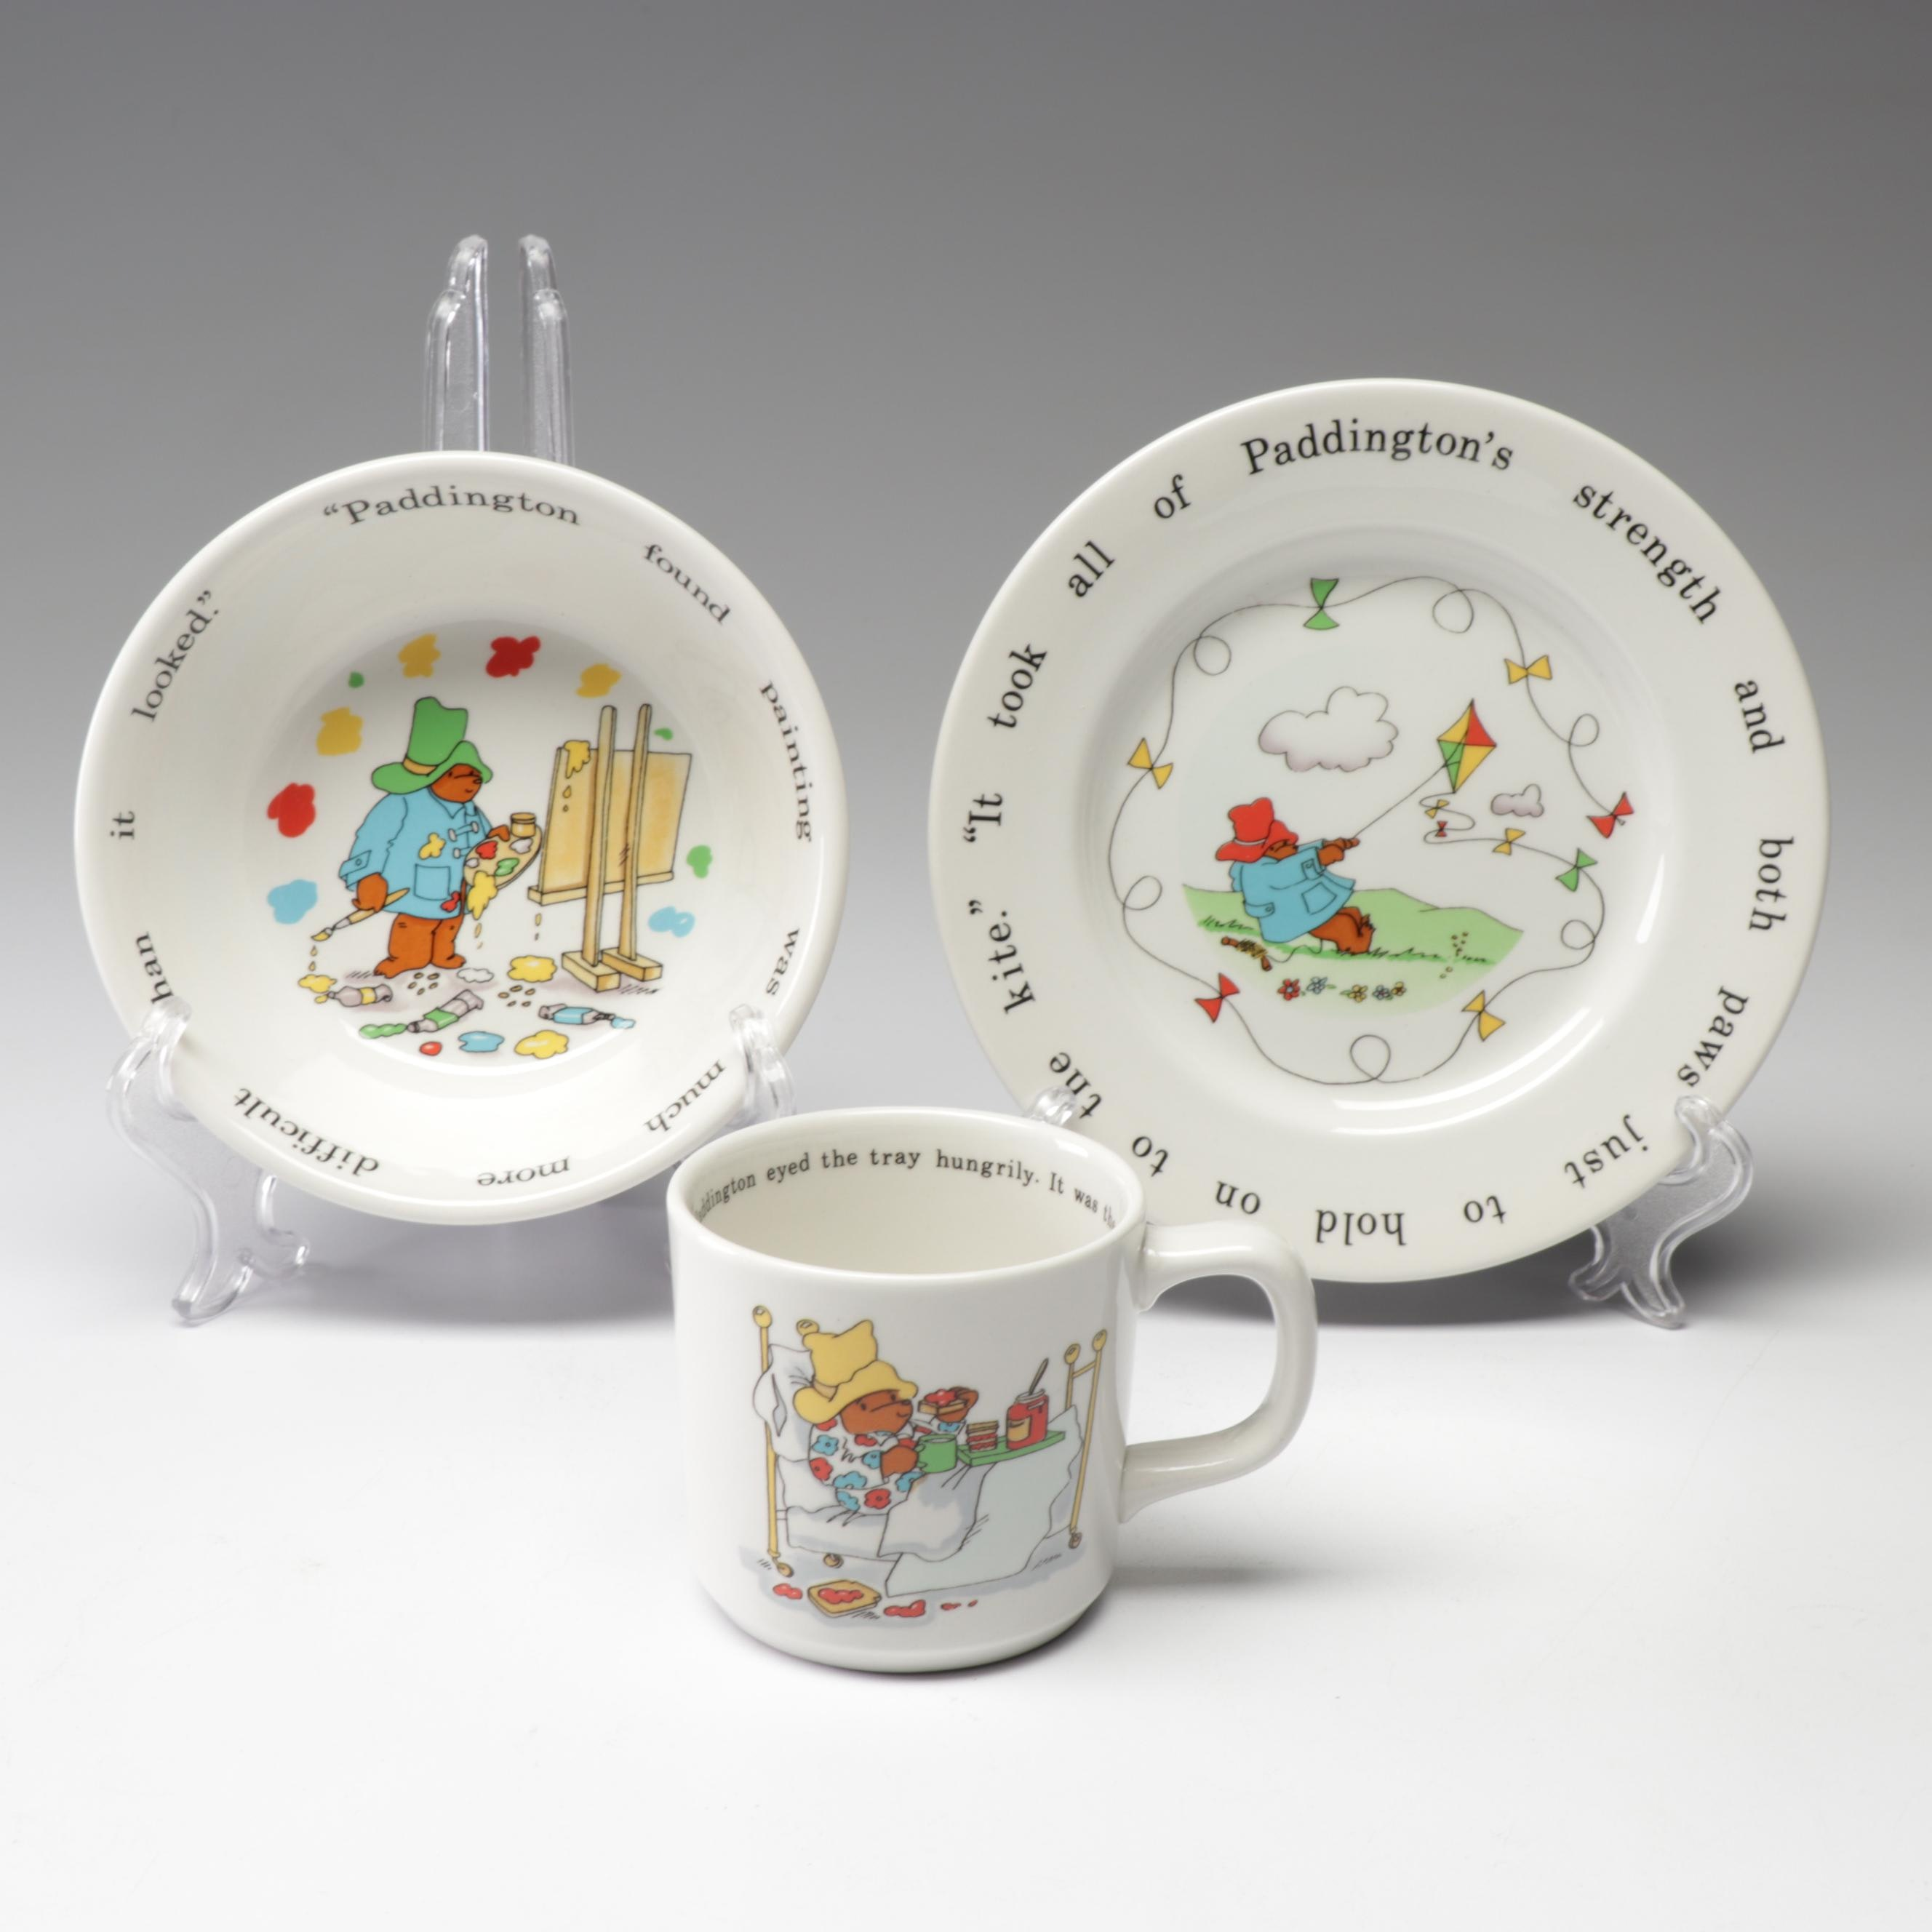 Coalport Paddington Ceramic Children's Tableware